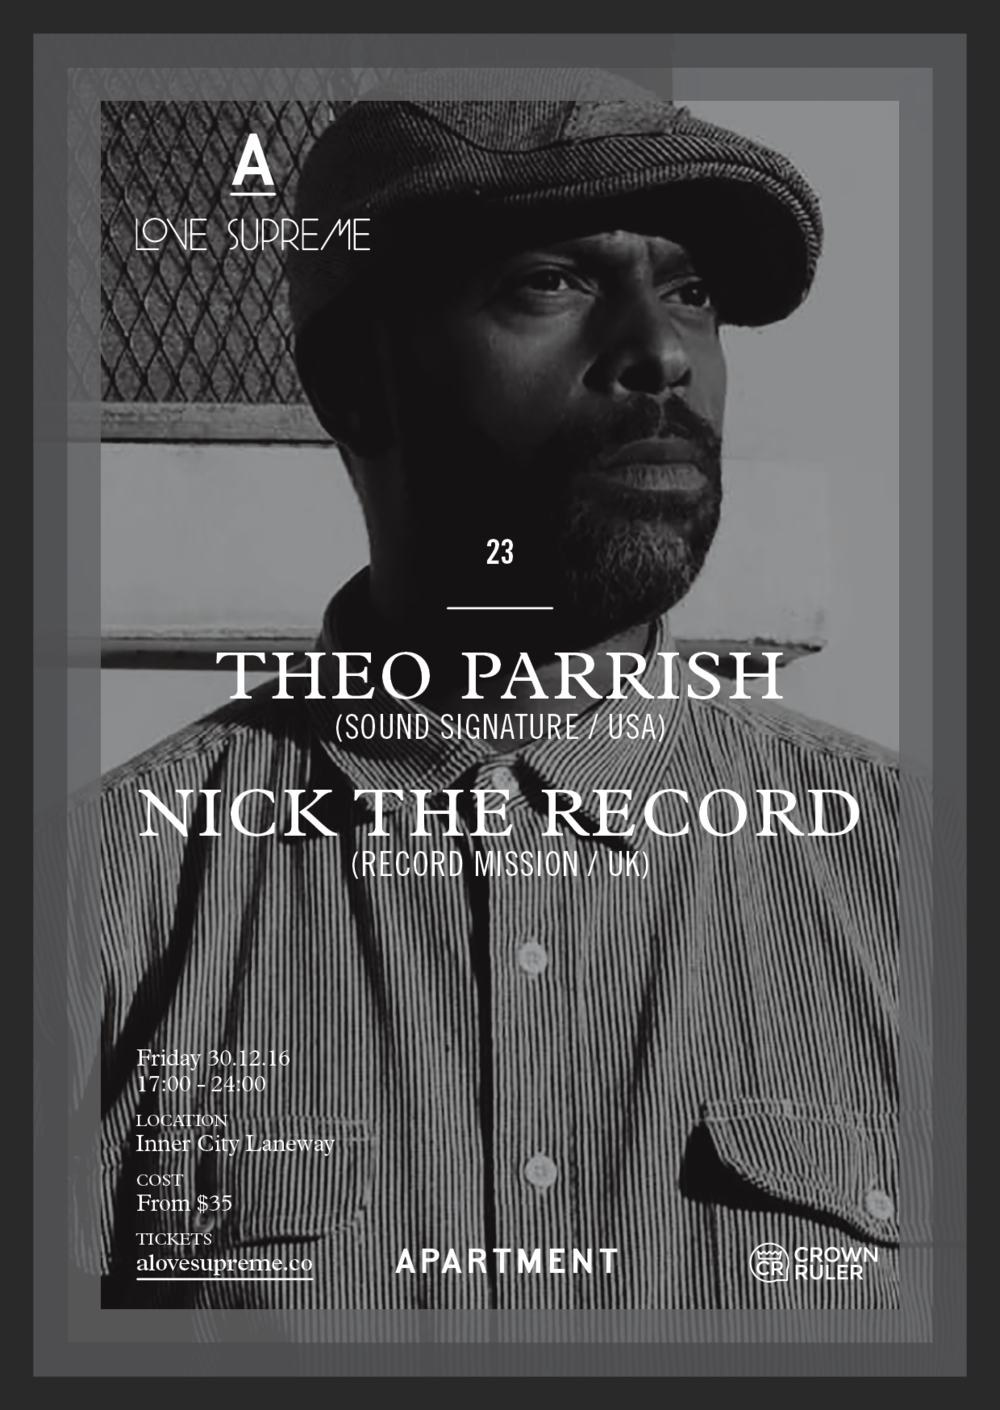 ALS-alovesupreme-22-theo-parrish-postcard-press-.png